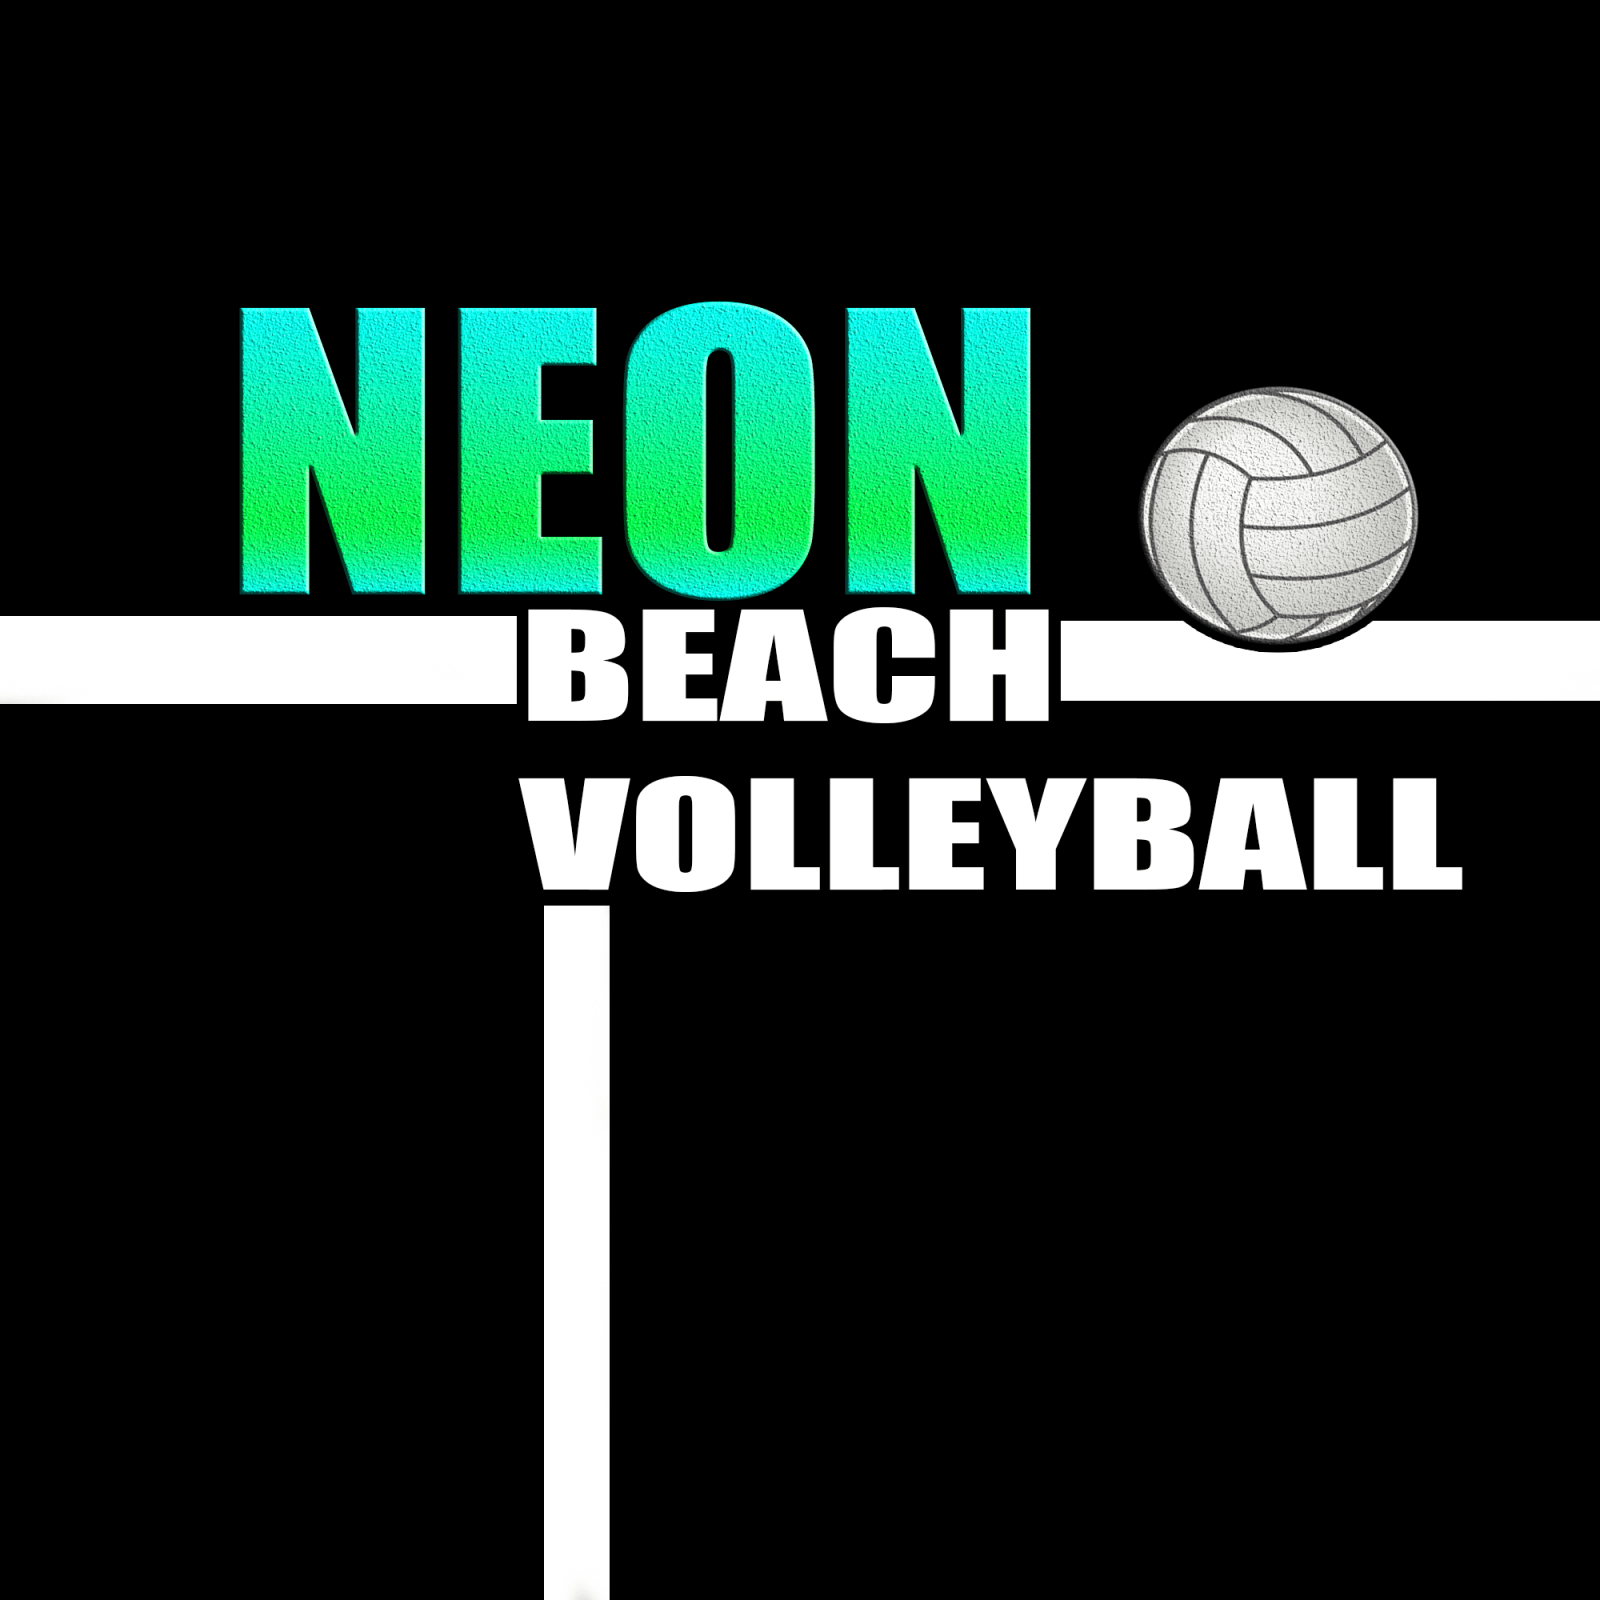 Neon volleyball event draws a small crowd